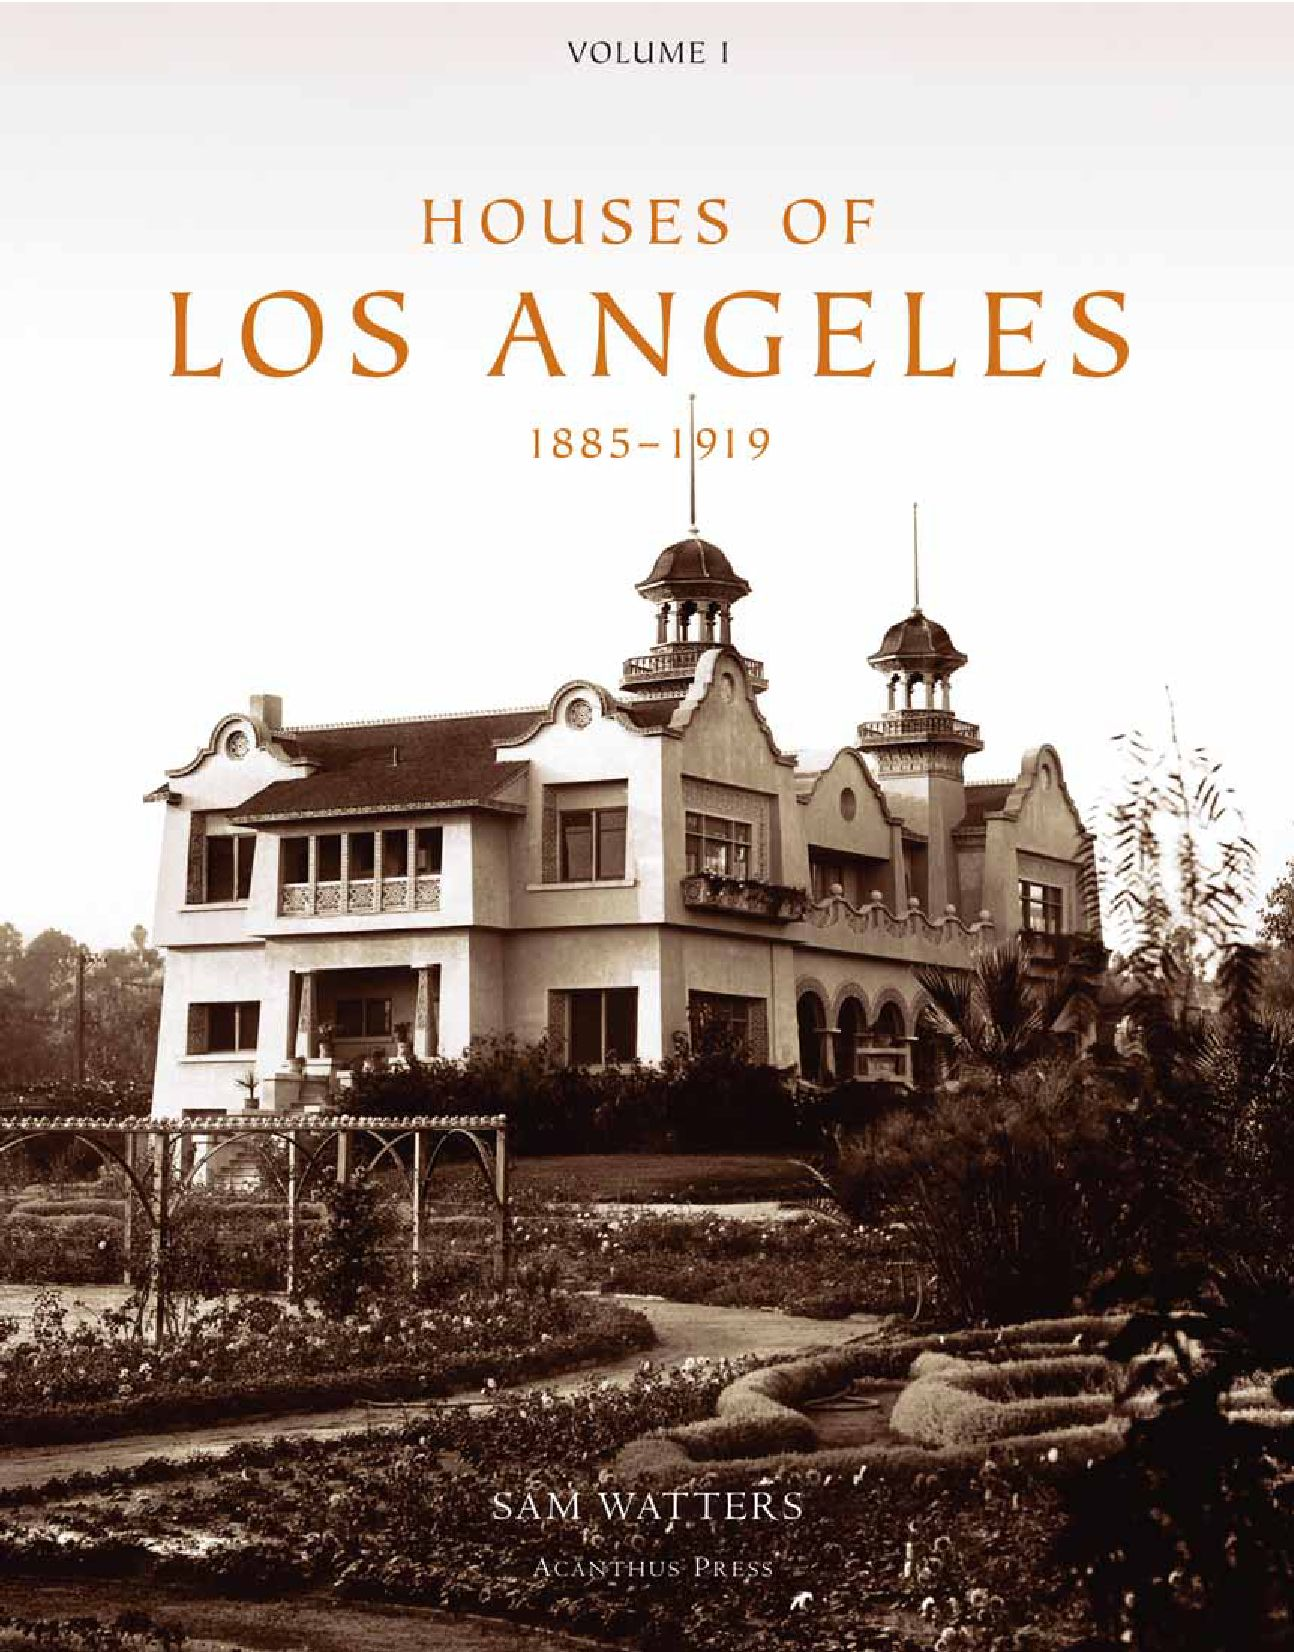 Japanese Mansion Floor Plans Issuu Houses Of Los Angeles 1885 1919 By Acanthus Press Llc